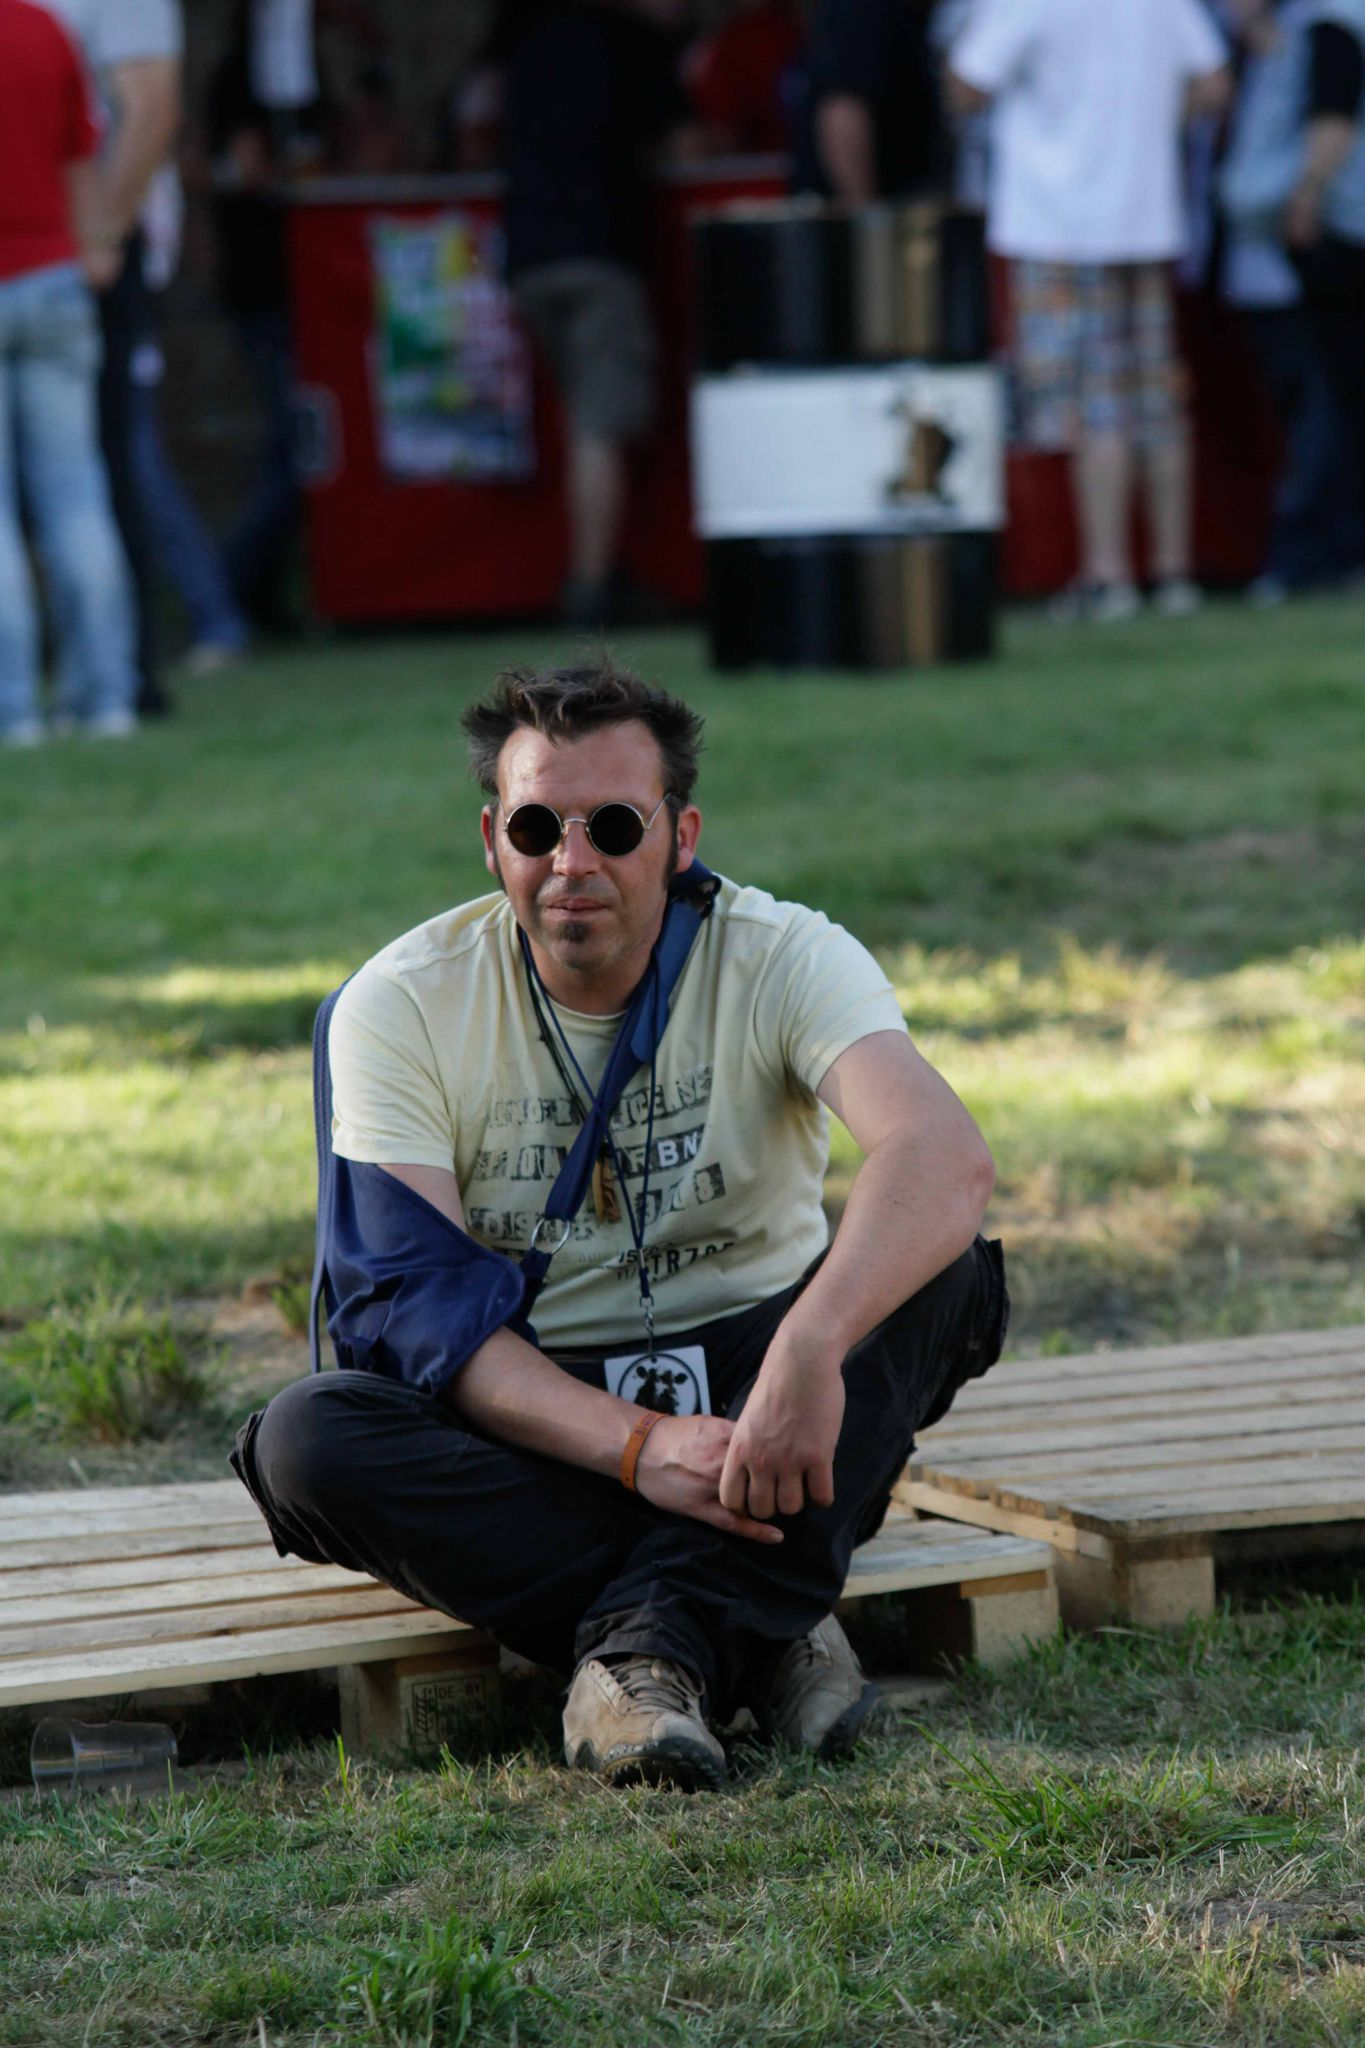 Ambiance-DTGFestival-2012-220